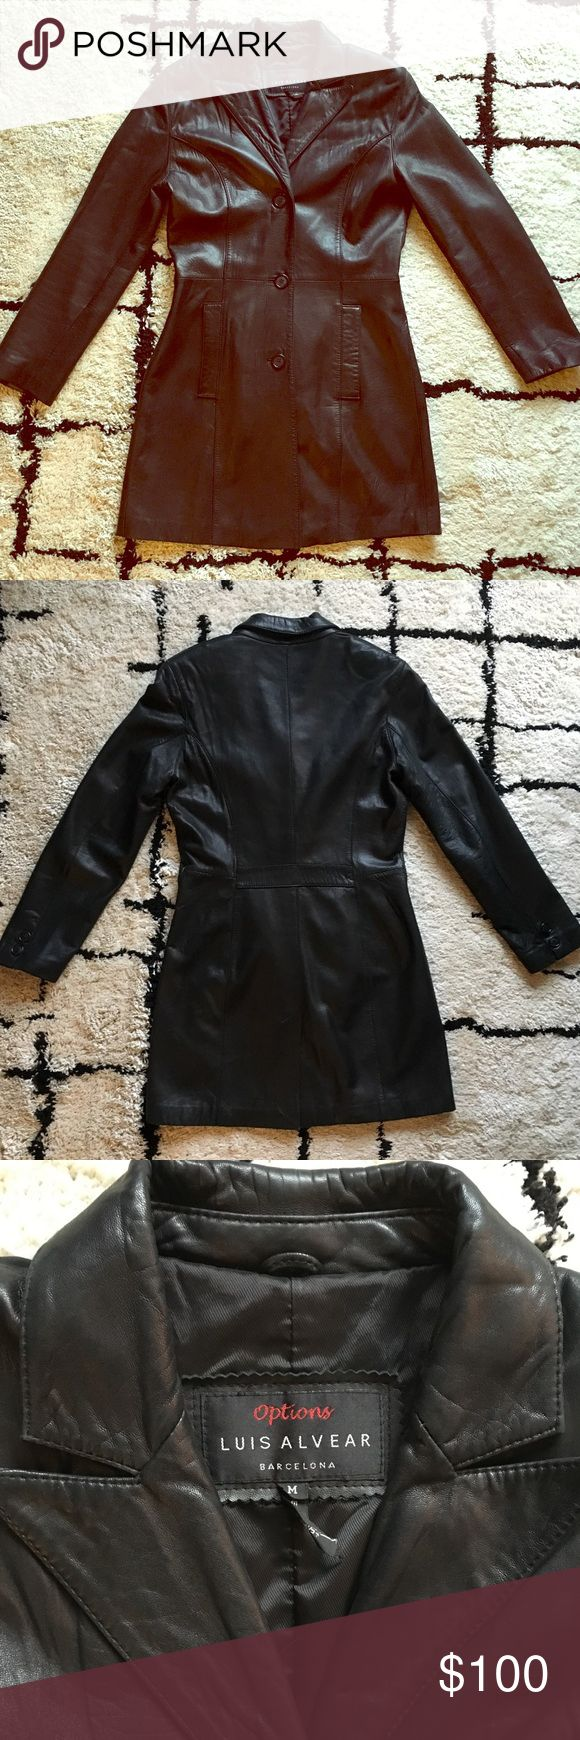 EUC Luis Alvear Black Leather 3/4 length Coat Sz M Luis Alvear Barcelona 3/4 Length 100% Leather Coat * Size Medium * Black color * Fully lined 3/4 length leather coat. Single breasted three button front closure. Two front slit pockets. Back vent * Buttery soft leather. Shell made of 100% leather and lining made of 50% nylon and 50% acetate * Excellent used condition. Tiny white dots on back of right sleeve that could possibly be wiped away with leather cleaner Luis Alvear Barcelona Jackets…